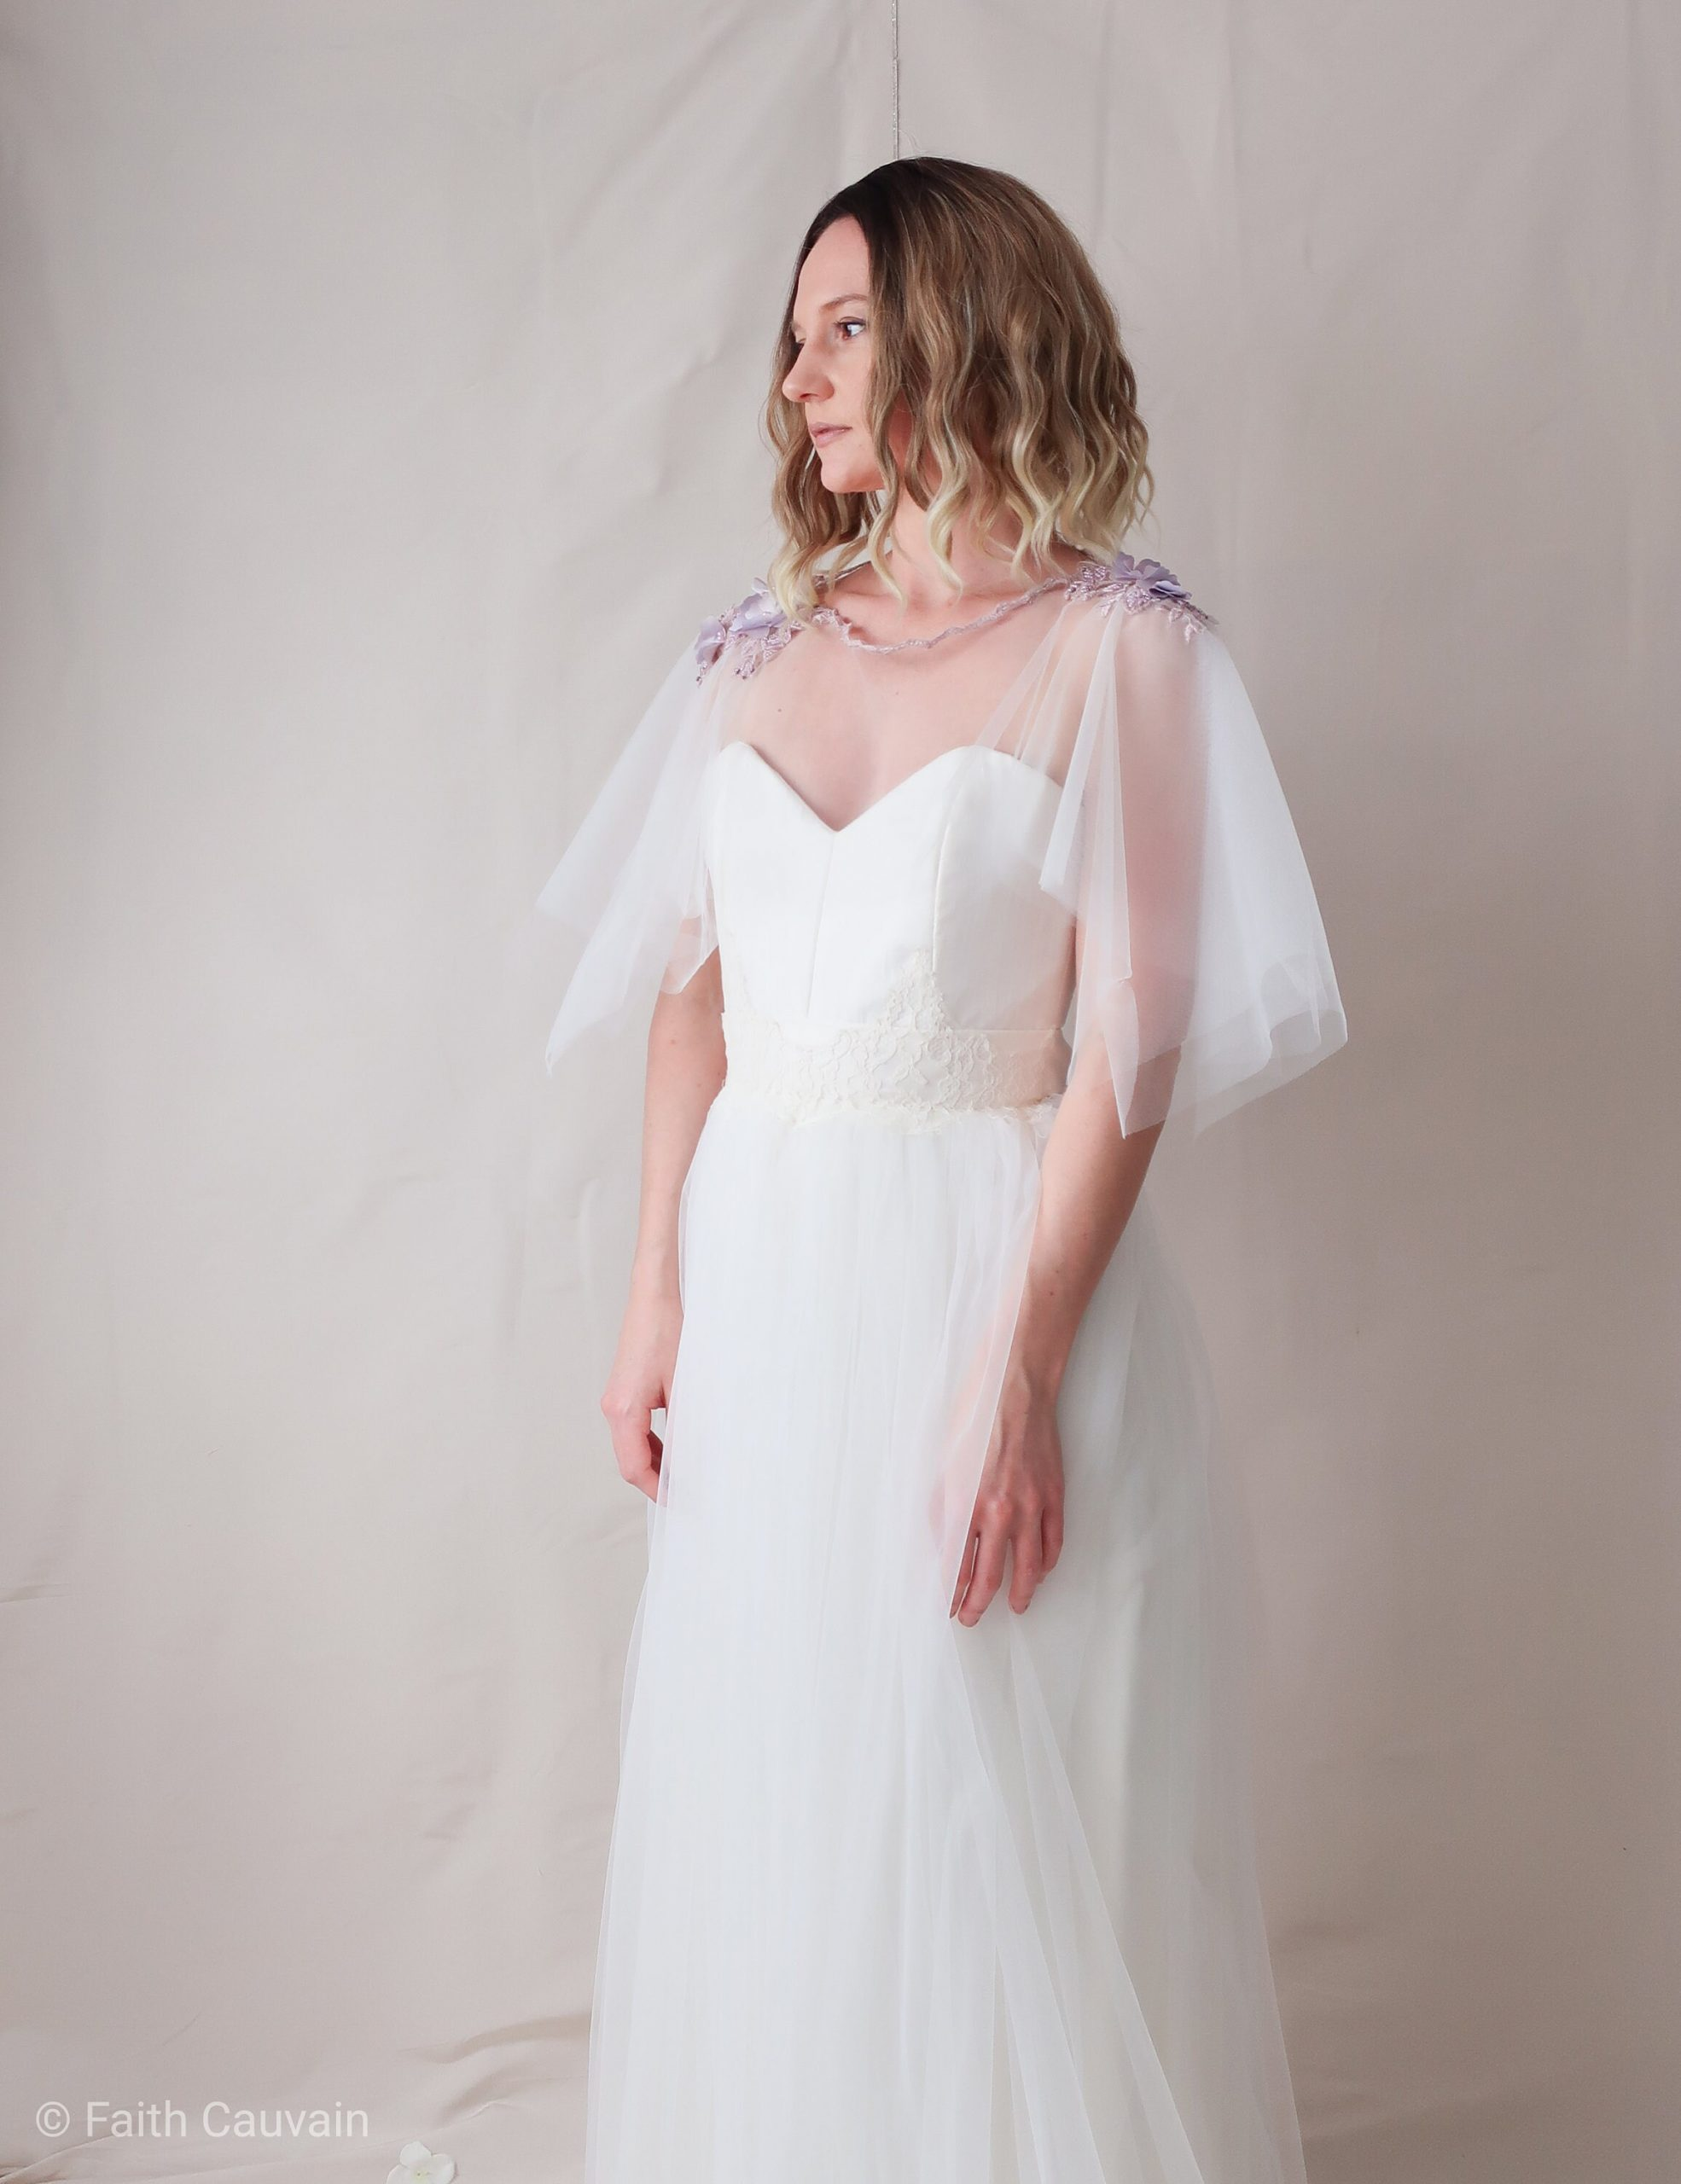 Wedding Cape in Tulle & Embroidery. Accessory For The Bride's Shoulders. Accessory. Sailing